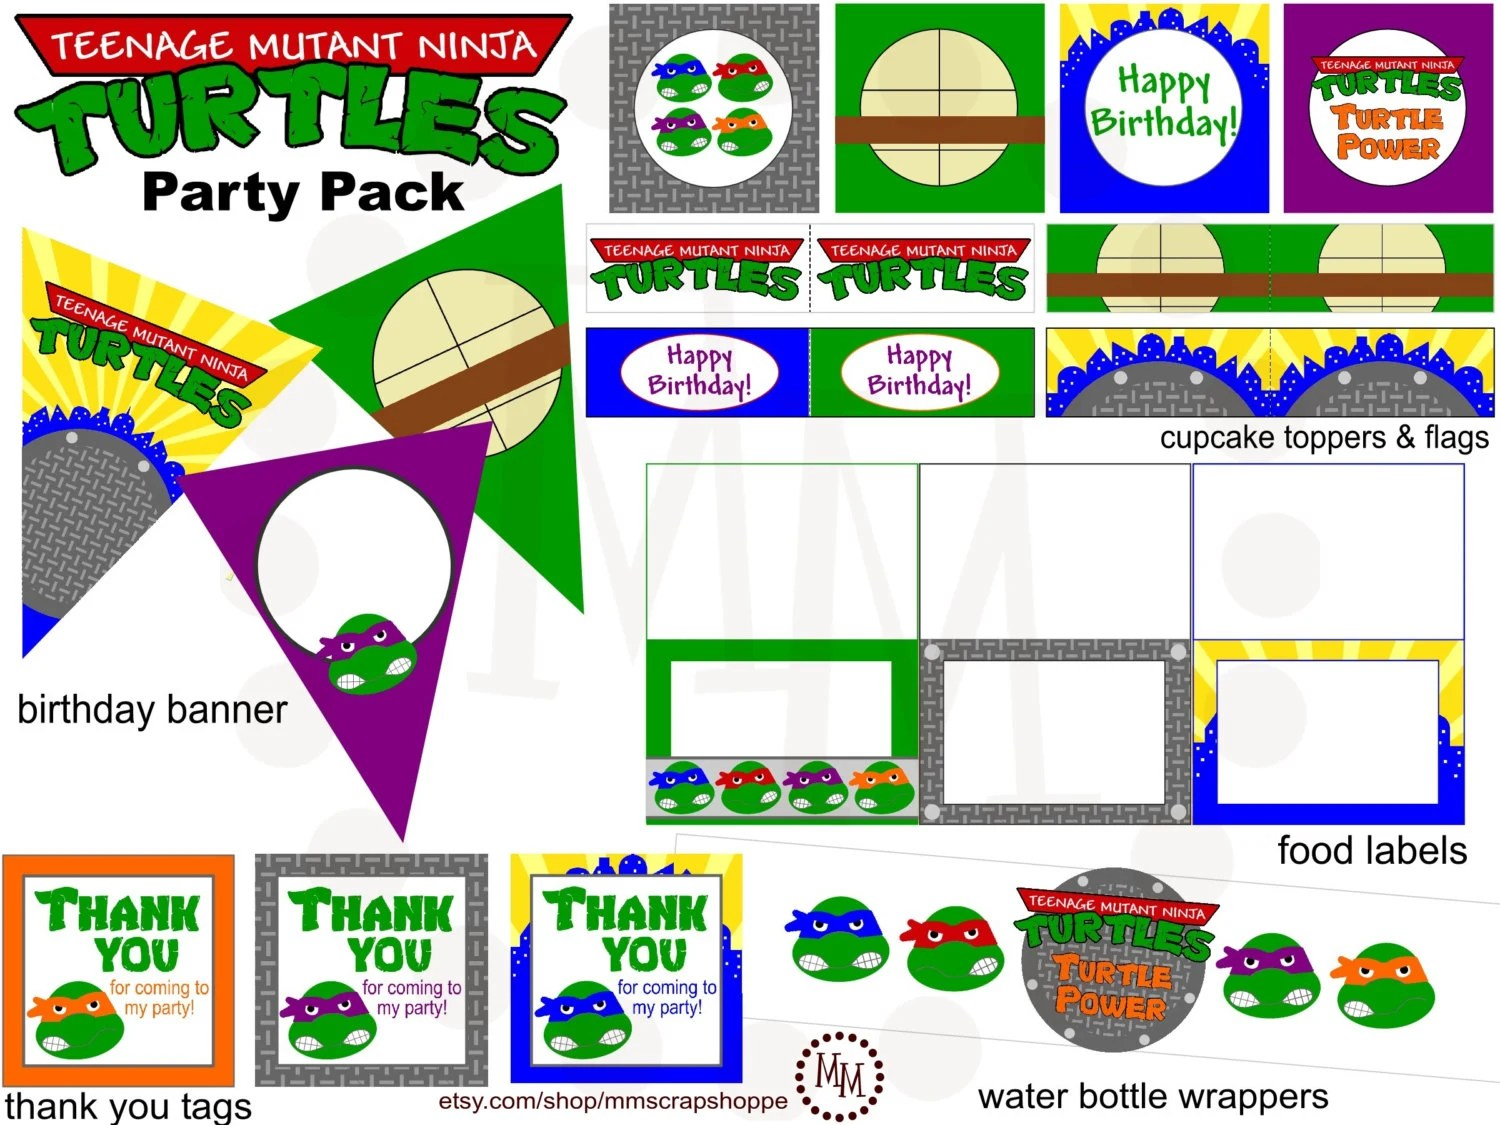 Teenage Mutant Ninja Turtles Printable Party Pack By Mmscrapshoppe